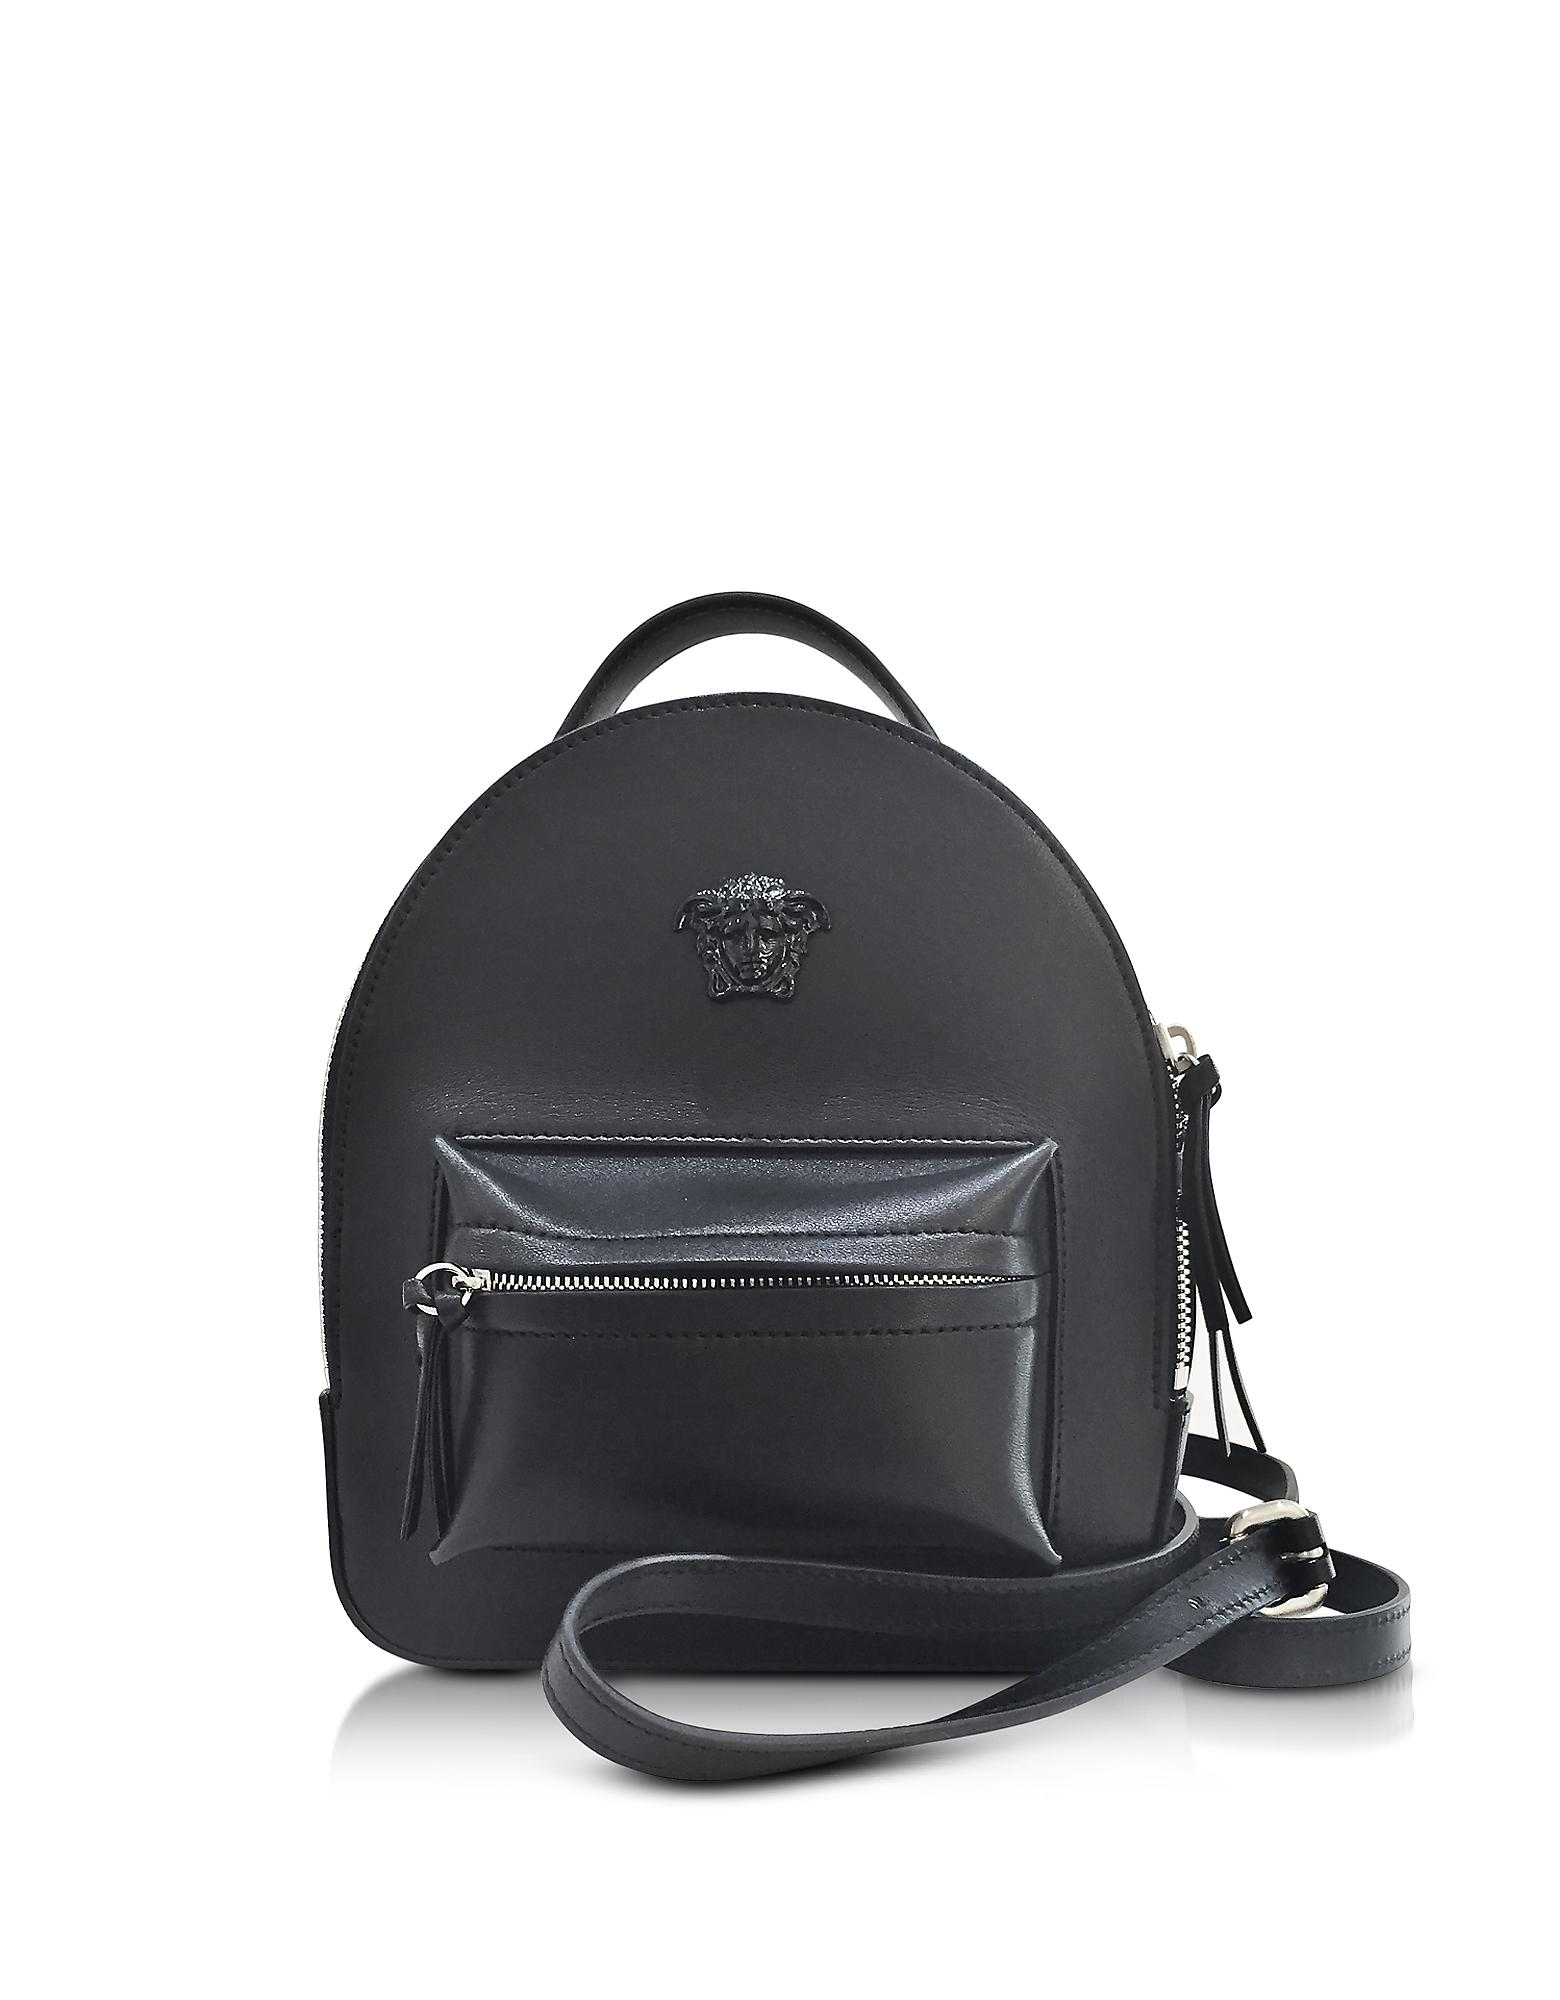 iphone text ringtone lyst versace palazzo black leather mini backpack in black 5862